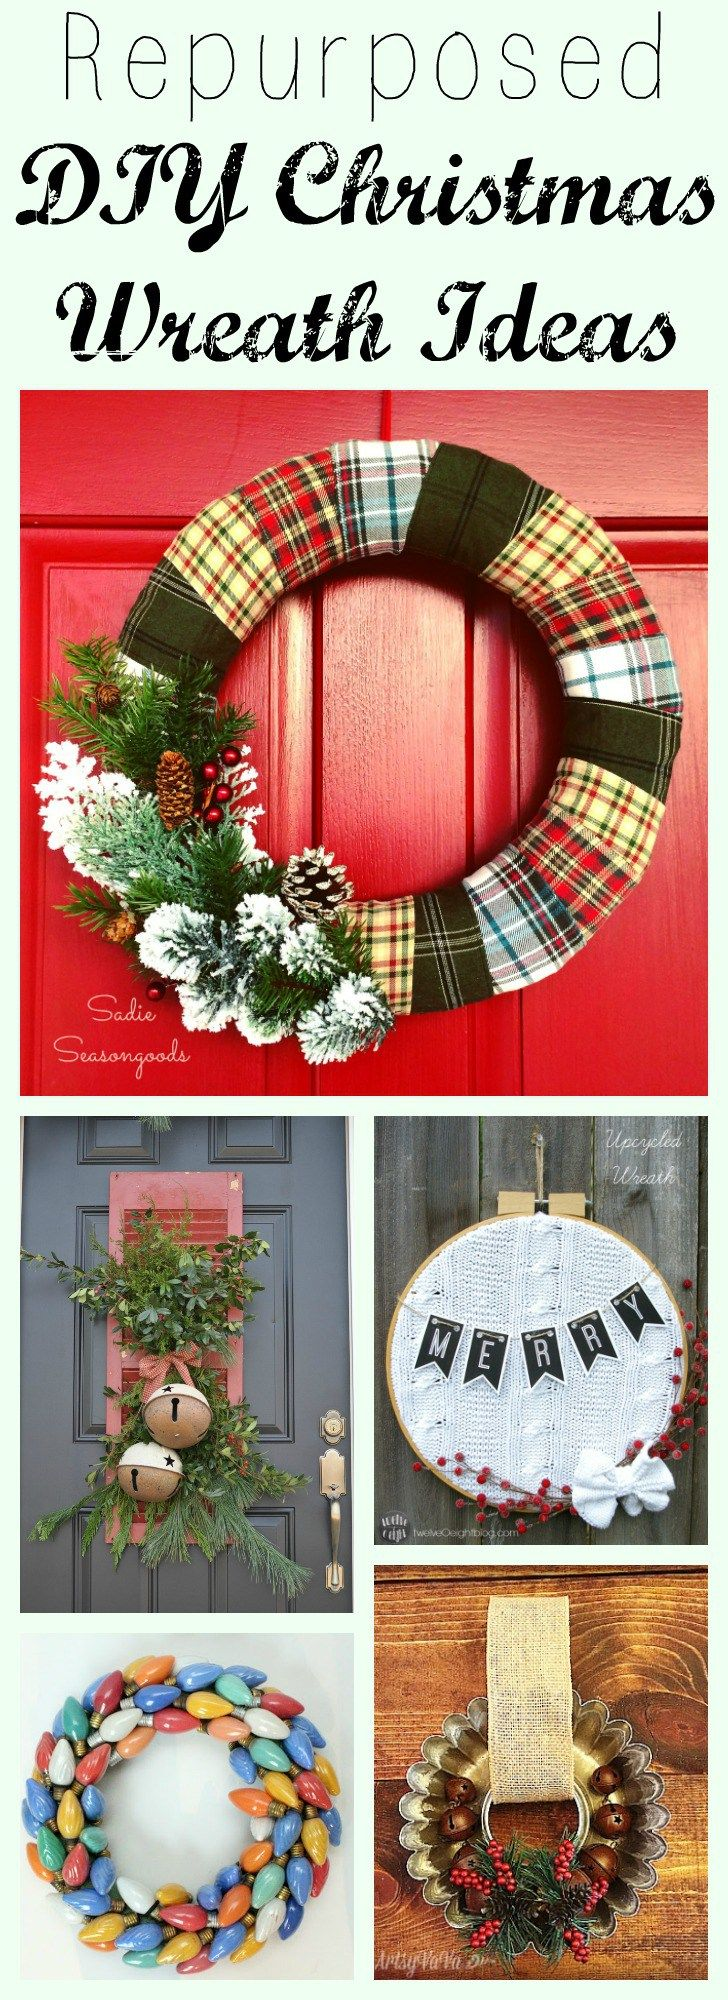 I absolutely LOVE repurposed and upcycled DIY Christmas wreaths- they're festive and unusual, with vintage and unexpected pieces. So many different craft project ideas here with colors and textures that are perfect for Christmas! I think the upcycled flannel shirt or Christmas ornament wreath are my favorites. Get all these ideas in a single post compiled by Sadie Seasongoods / www.sadieseasongoods.com